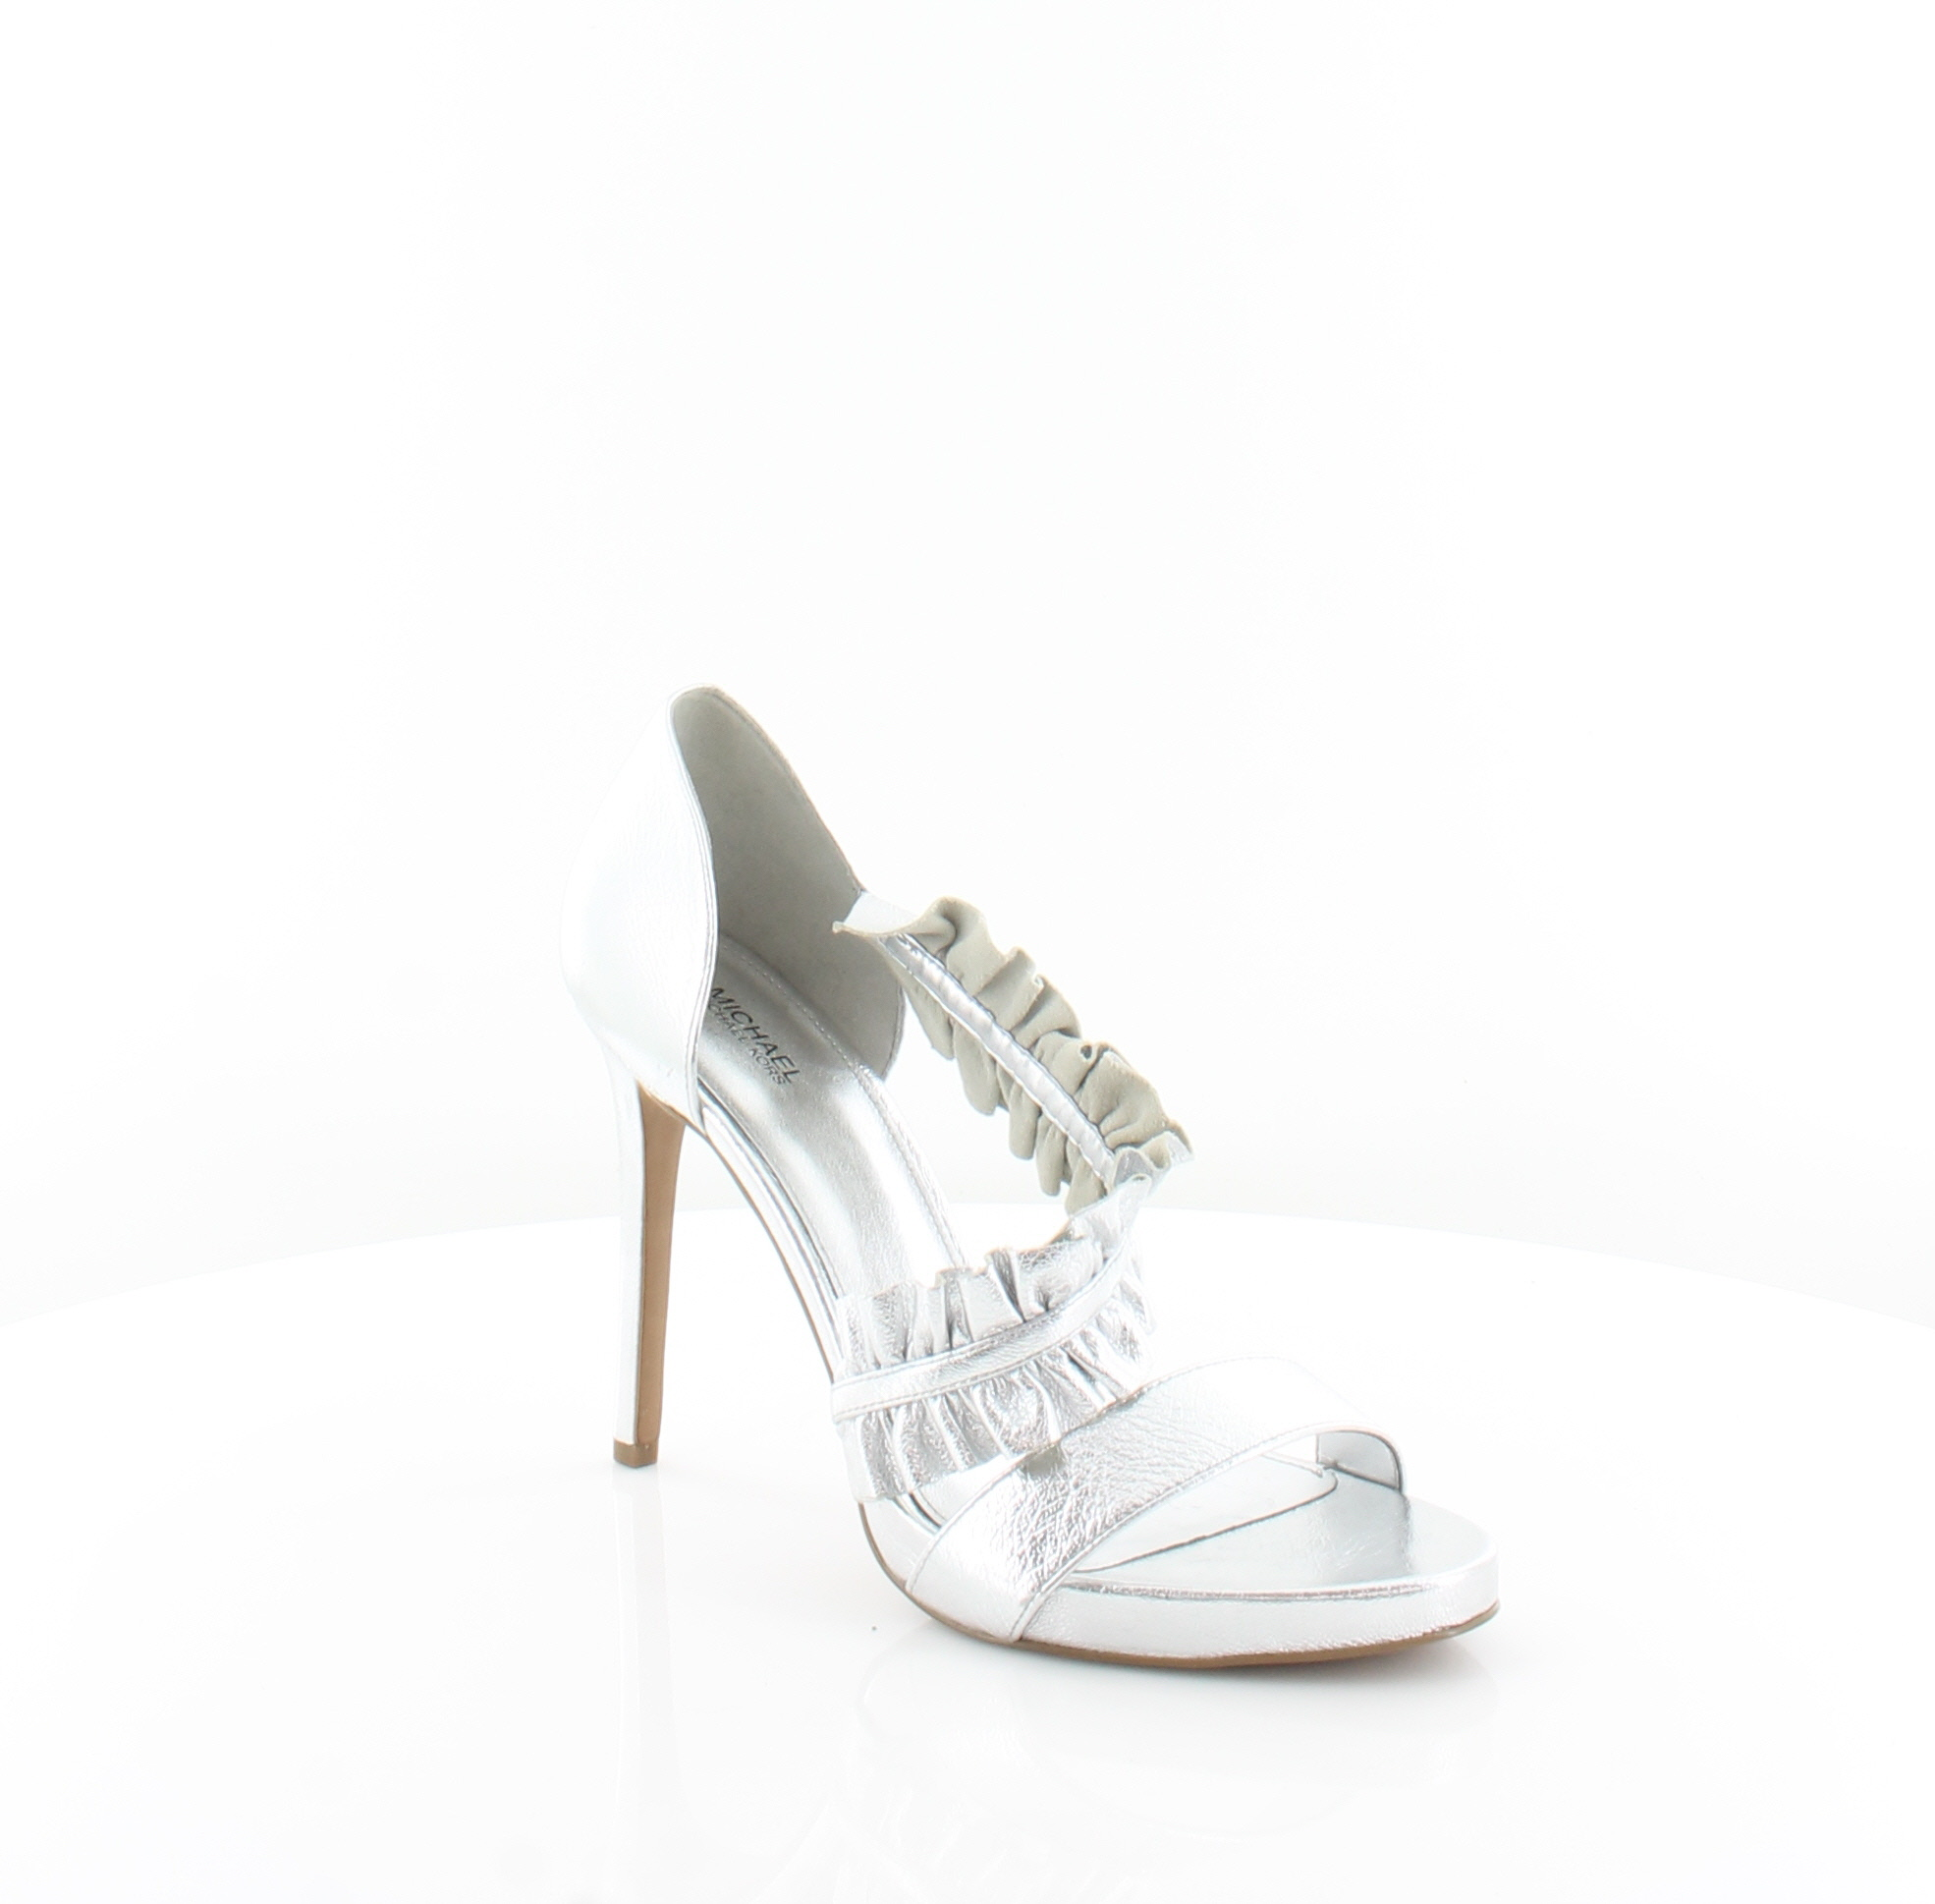 83c0ea0dba6 Michael Kors Bella Platform Silver Womens Shoes Size 10 M Heels MSRP  135